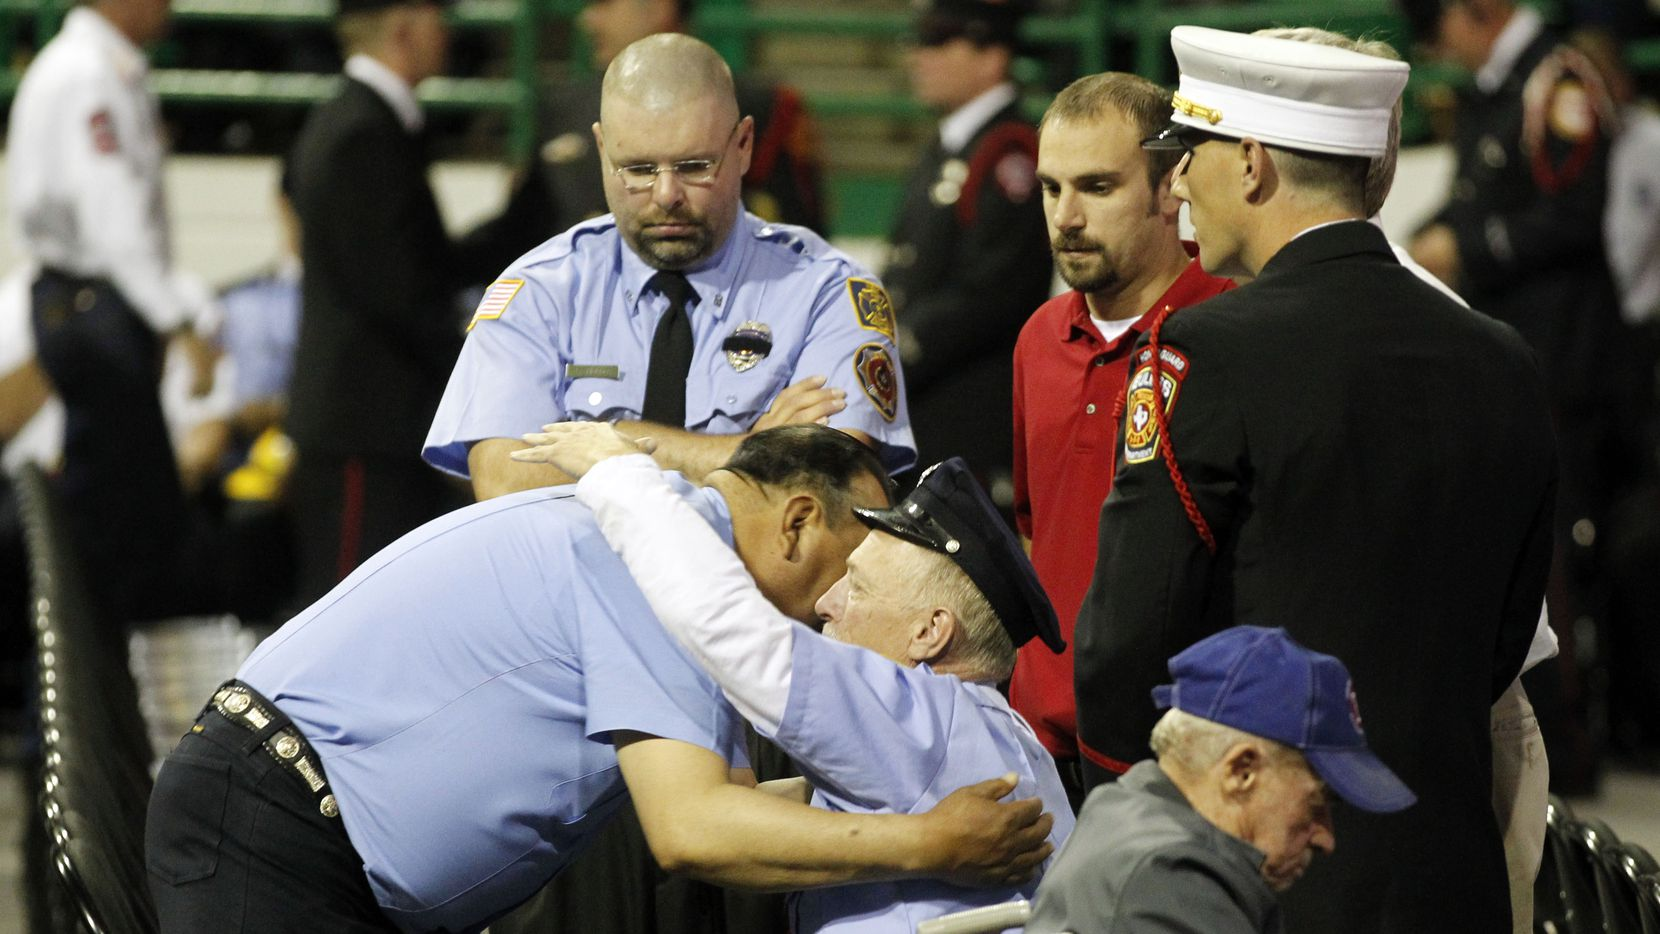 West firefighters console each other before a memorial service for first responders who died battling the fertilizer plant fire in April 2013.